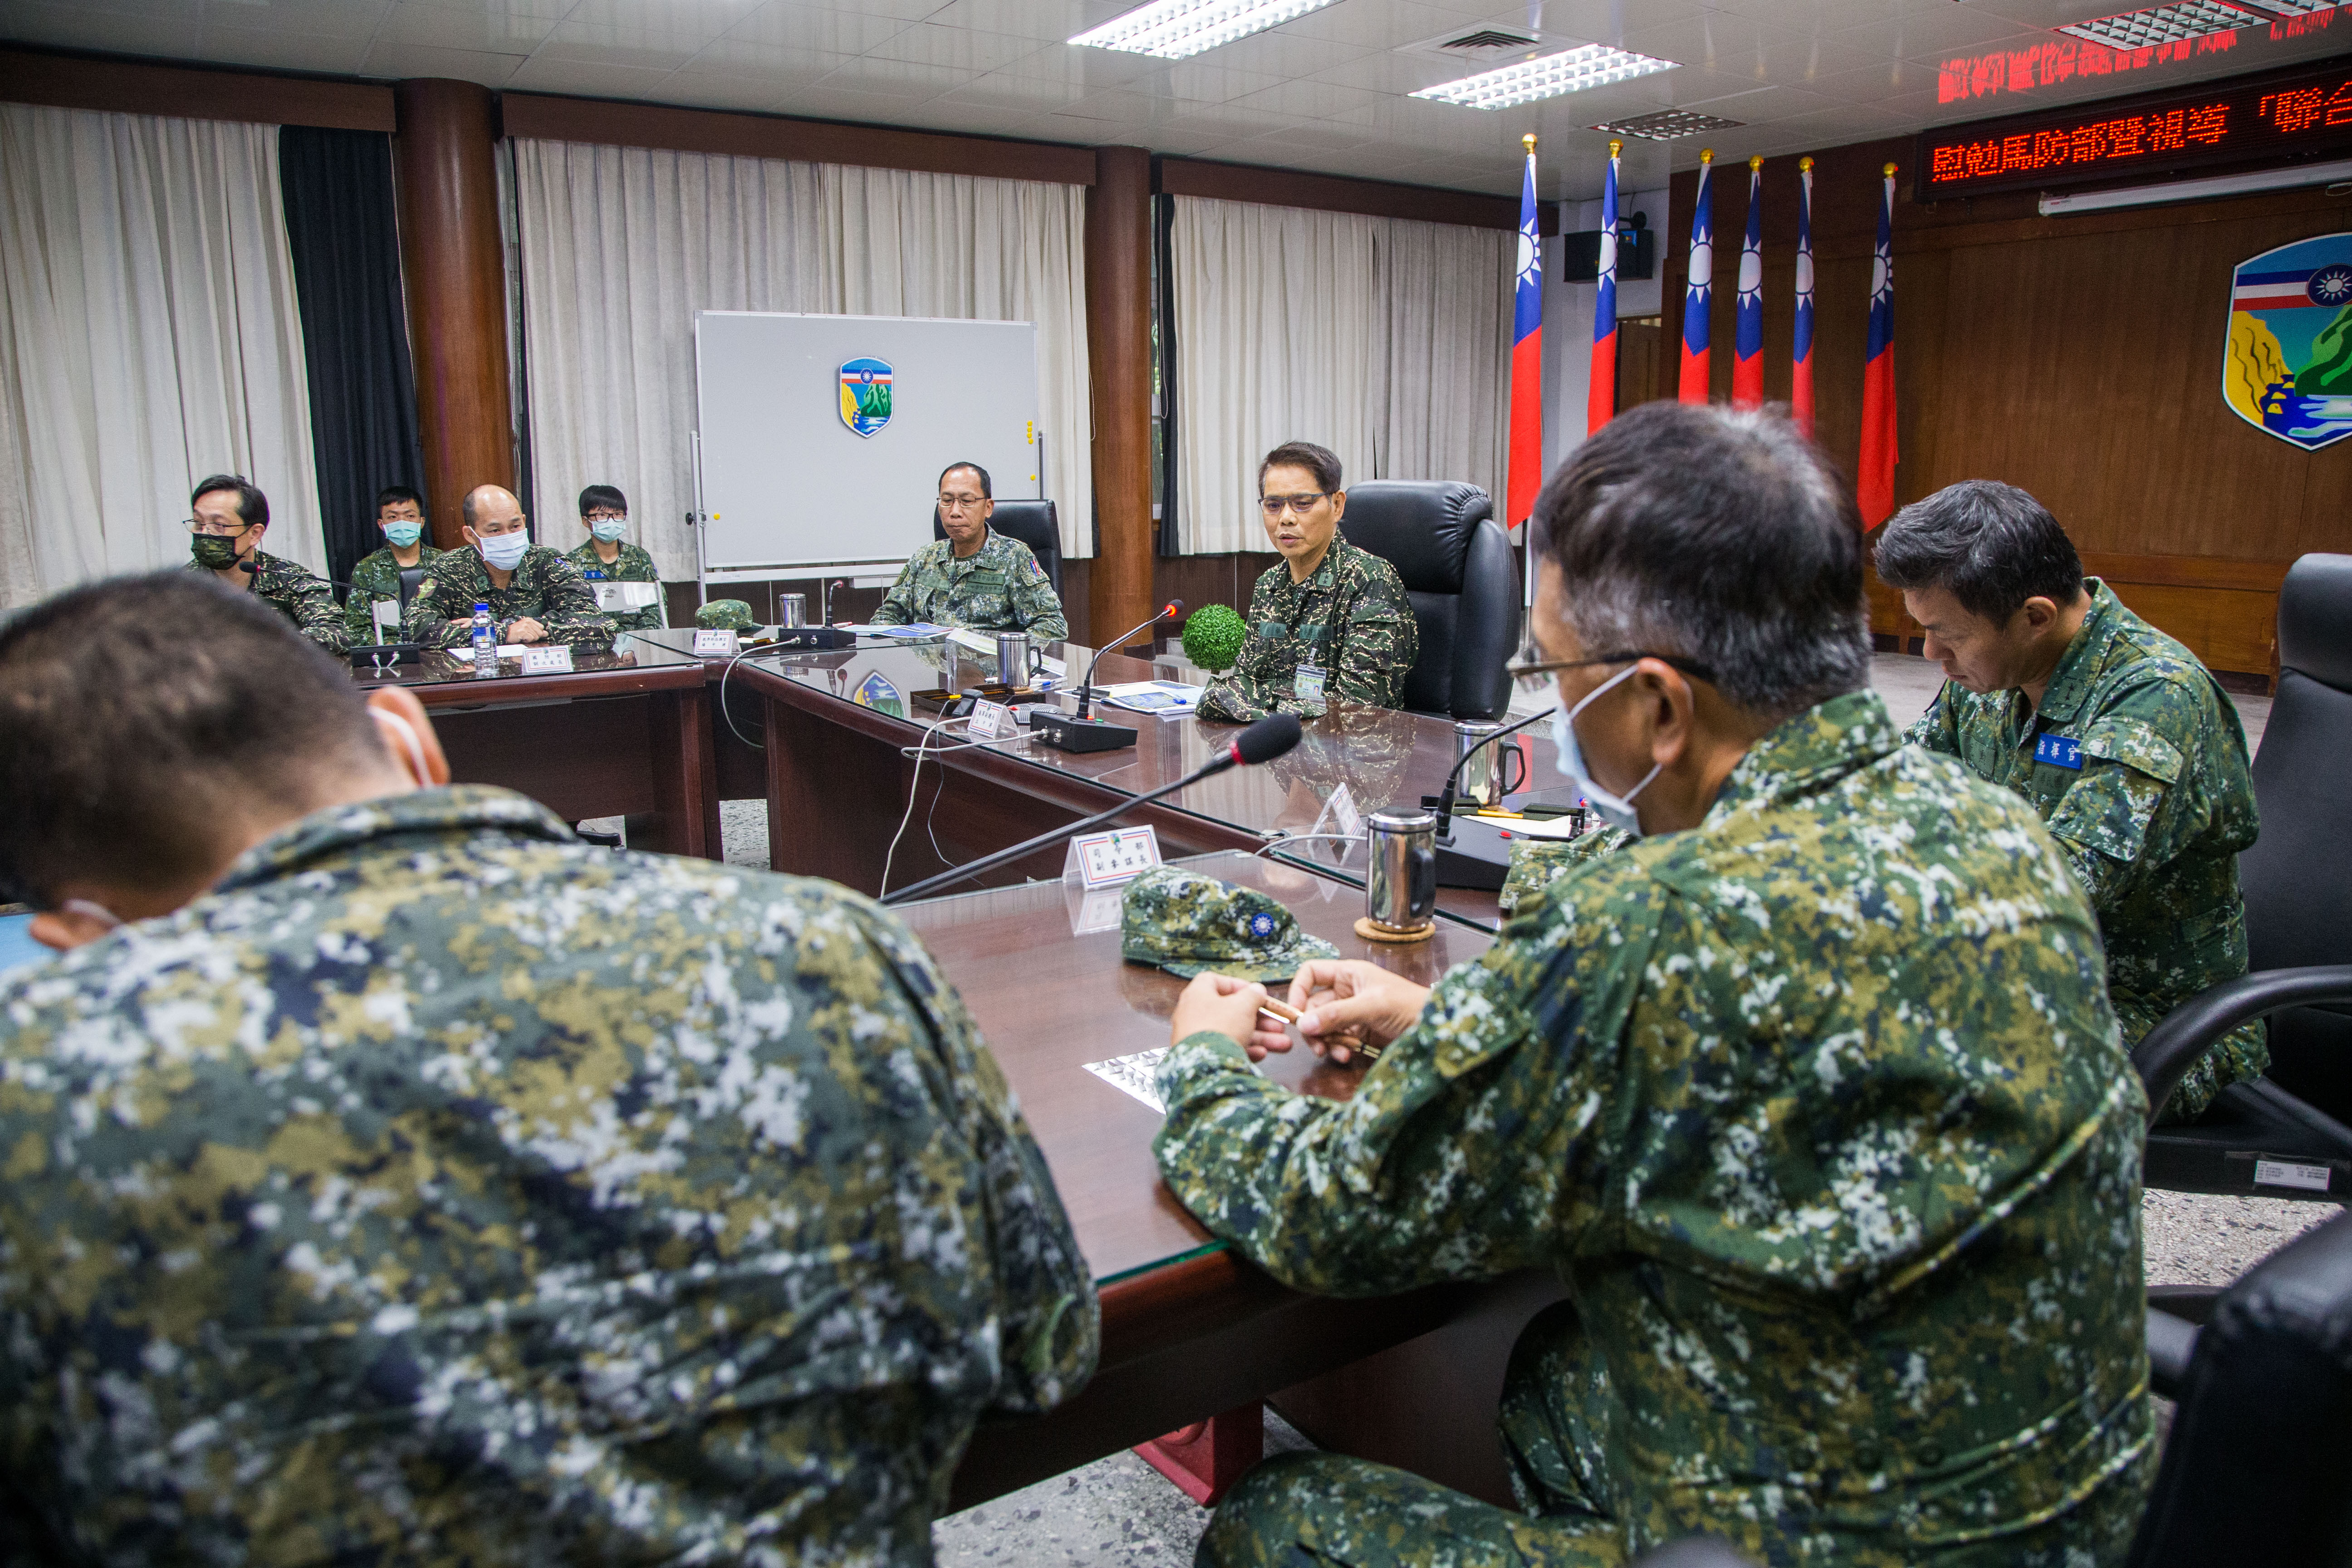 VCGS-Navy Inspected Matsu Anti-Landing Drills and Recognized Troops' Training Commitment